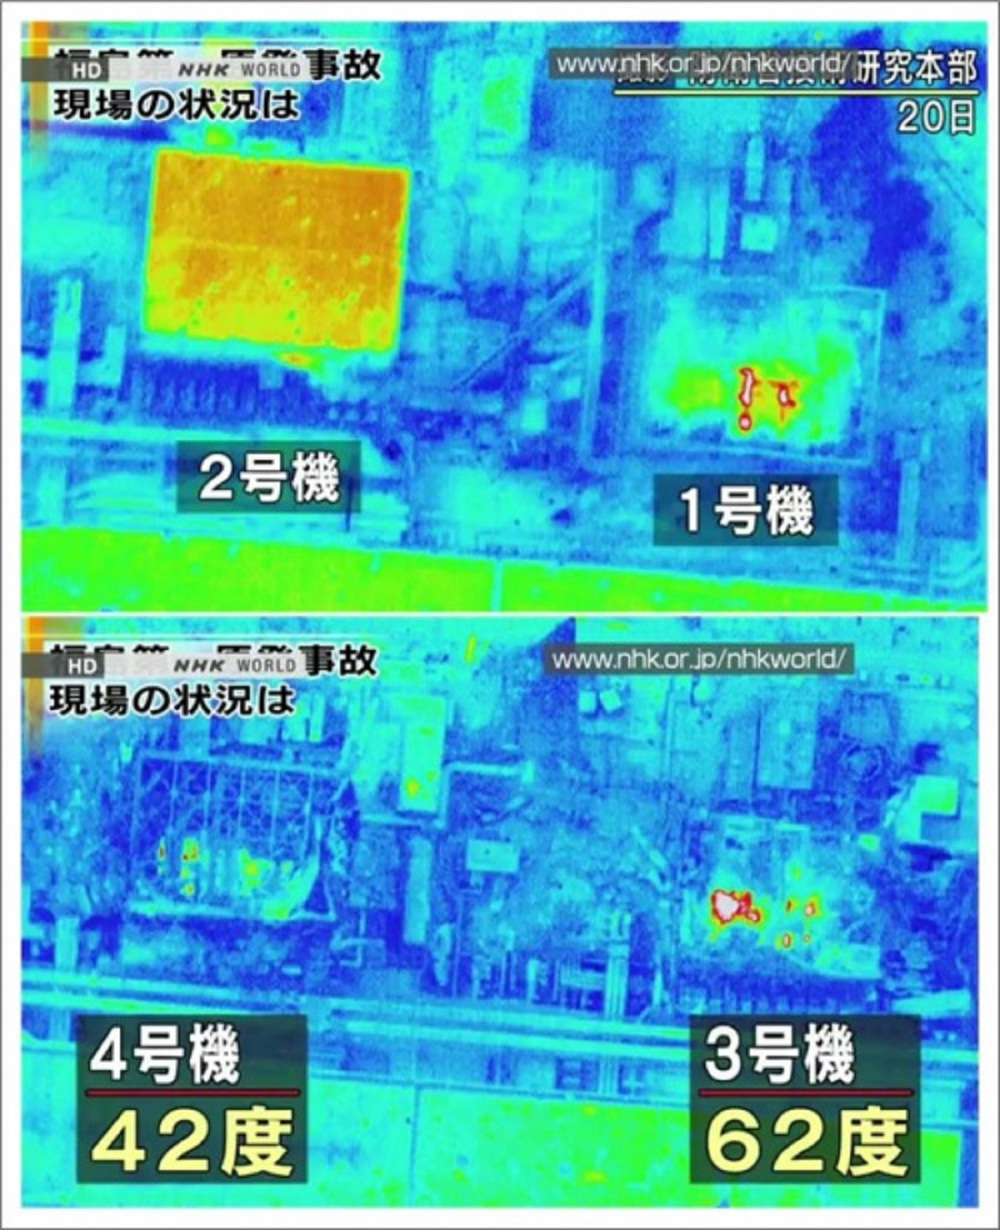 Thermal+image+Fukushima+Reactor+Meltdown.jpg